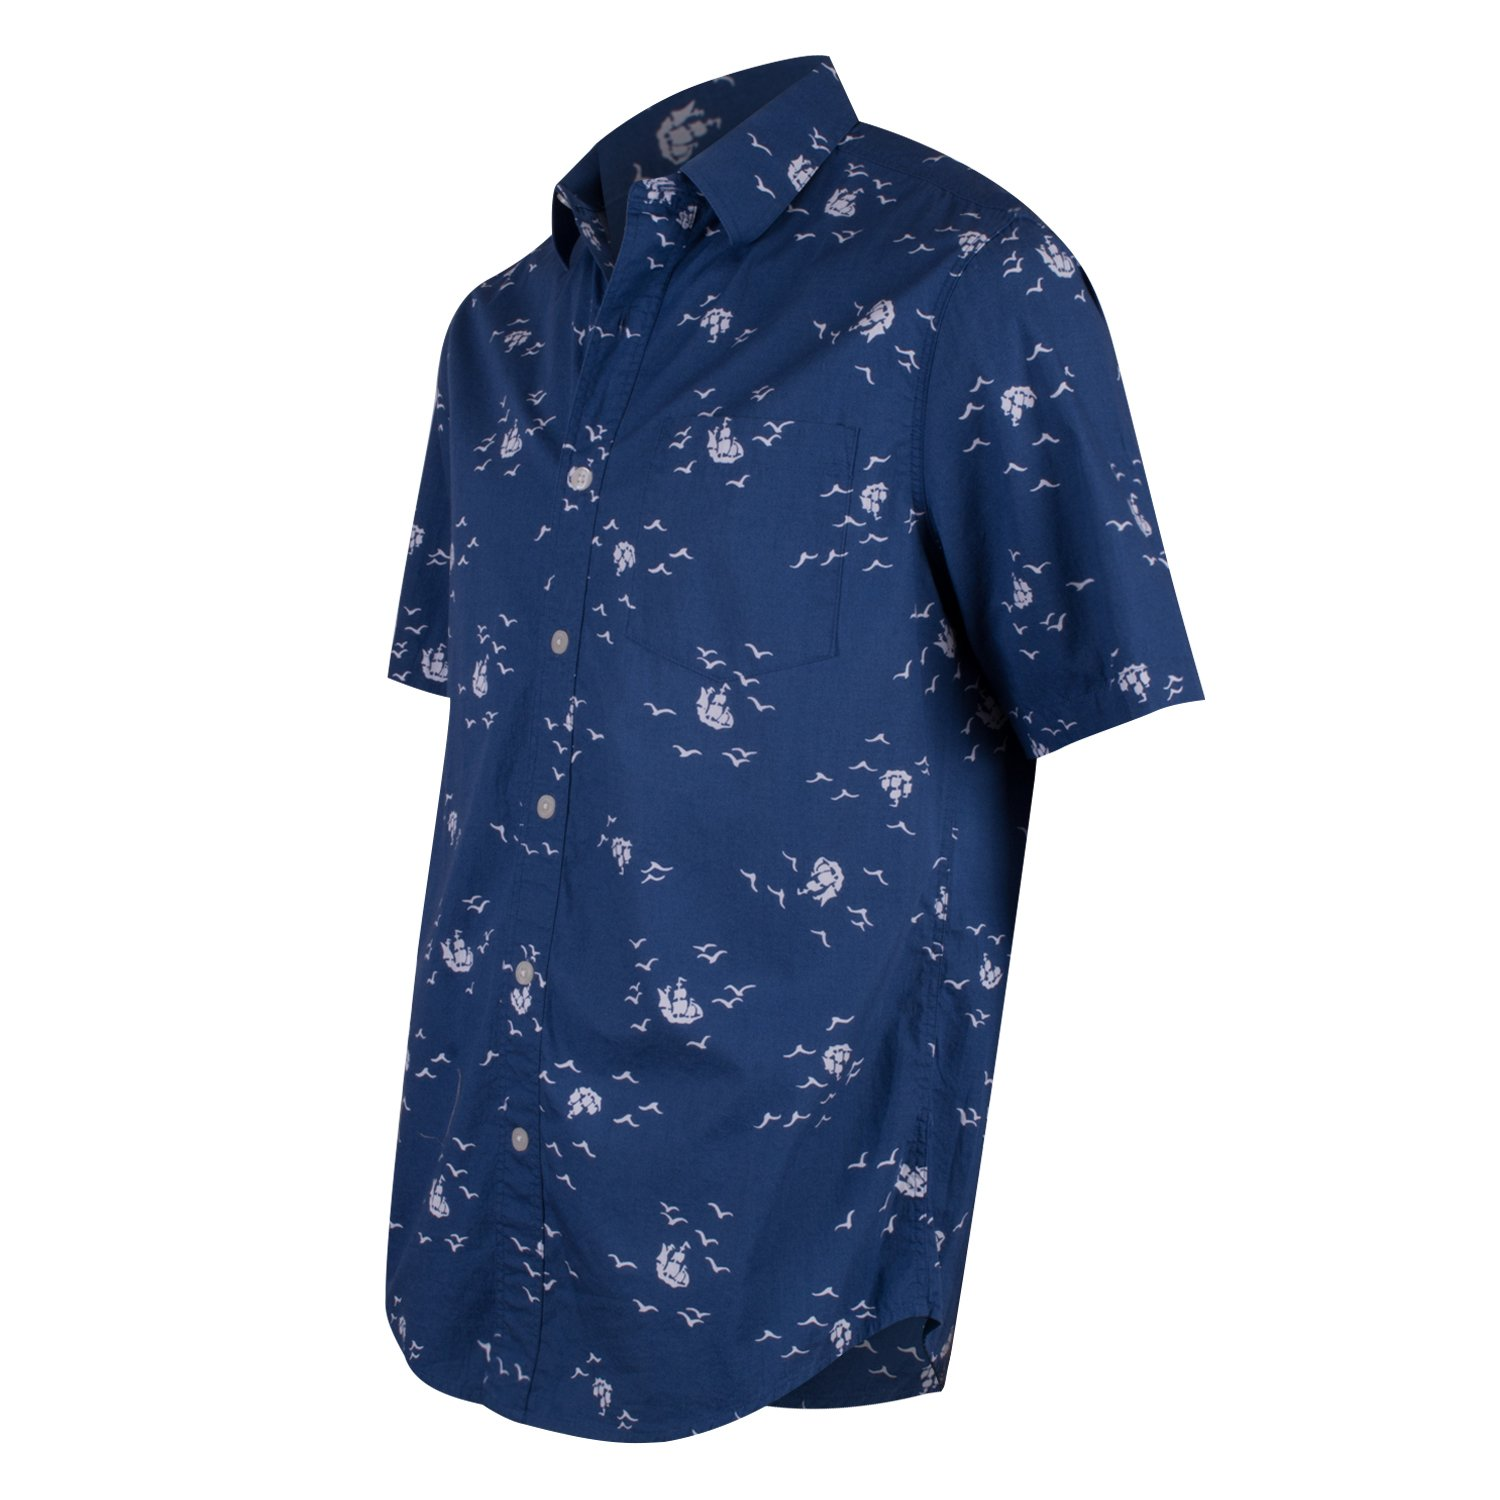 3e5d6230 Campia Moda Men's Washed Cotton Modern Fit Print Shirt (Navy Abstract Bird  and Ship Print, S) at Amazon Men's Clothing store: